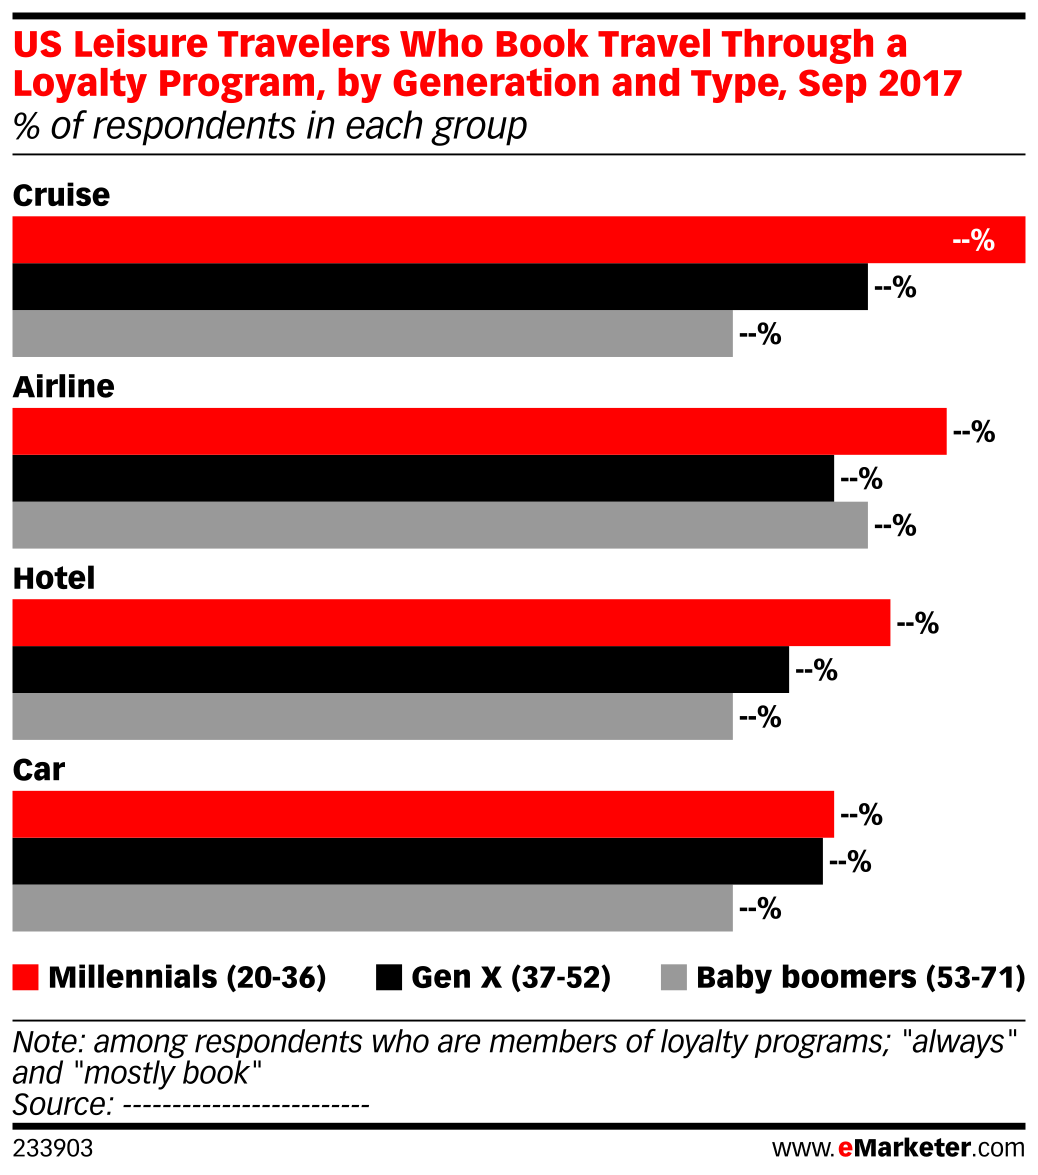 US Leisure Travelers Who Book Travel Through a Loyalty Program, by Generation and Type, Sep 2017 (% of respondents in each group)